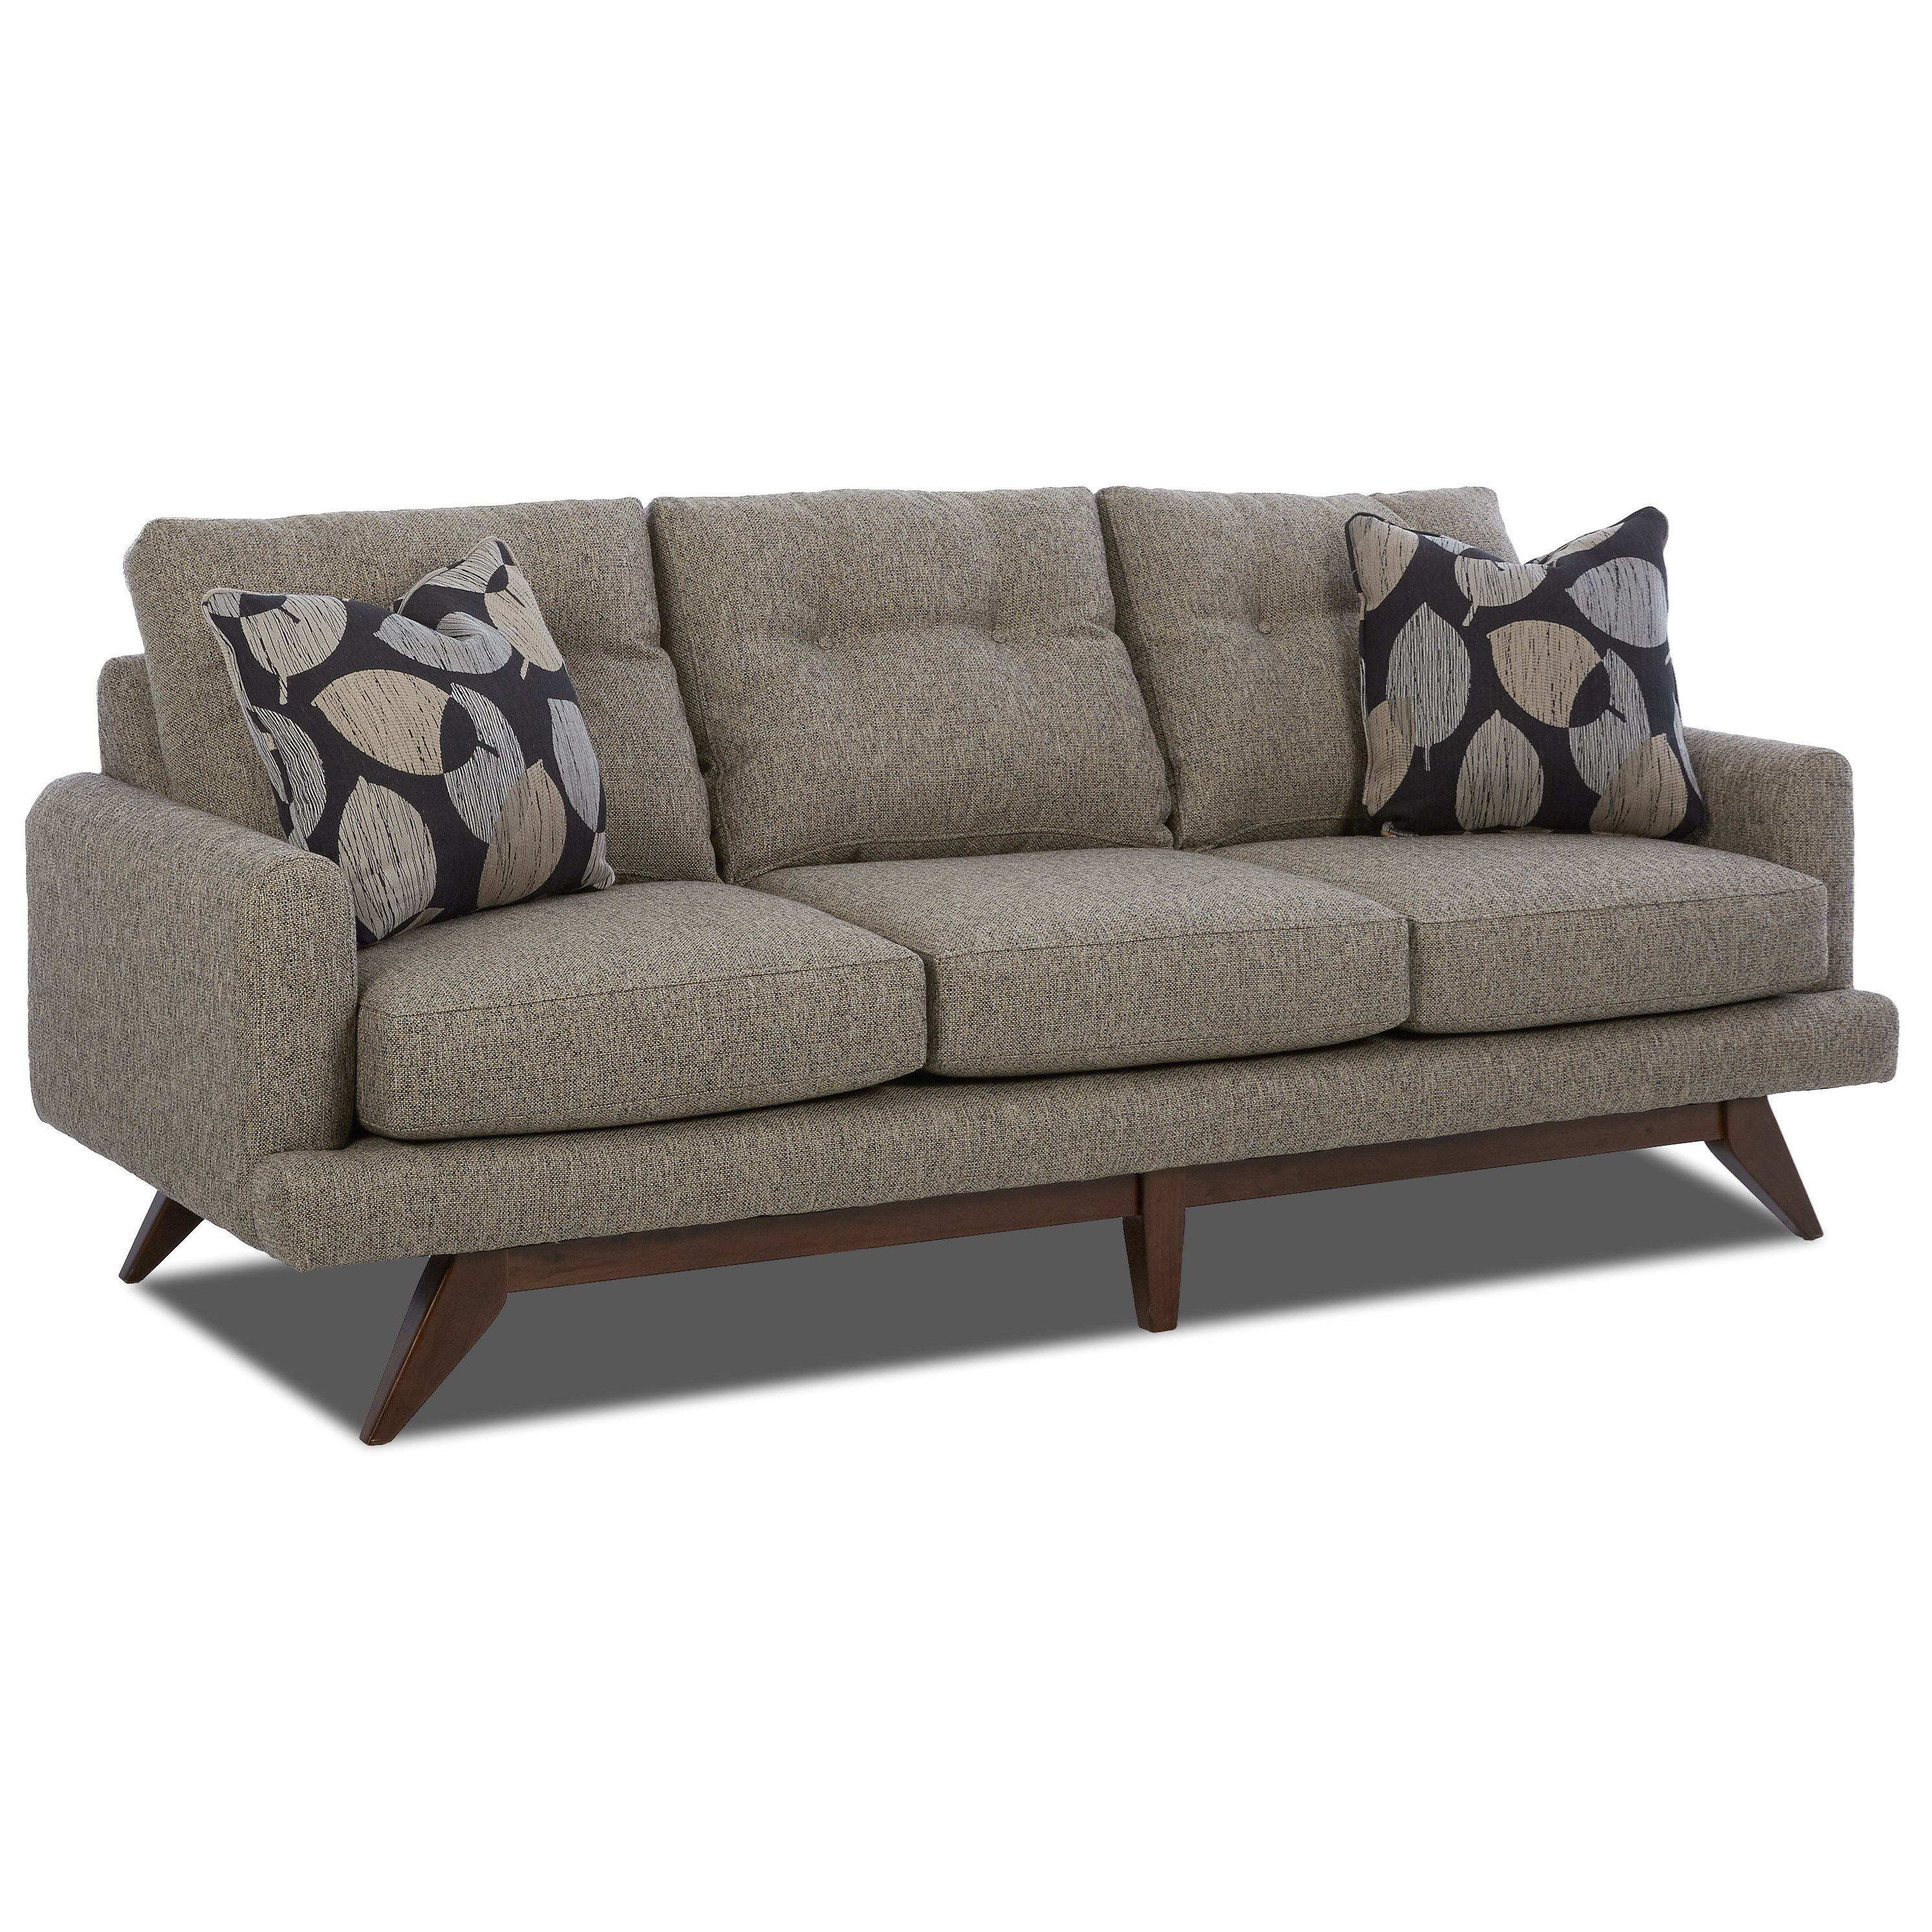 Mid Century Modern Sofa with Tufted Back and Modern Platform Base